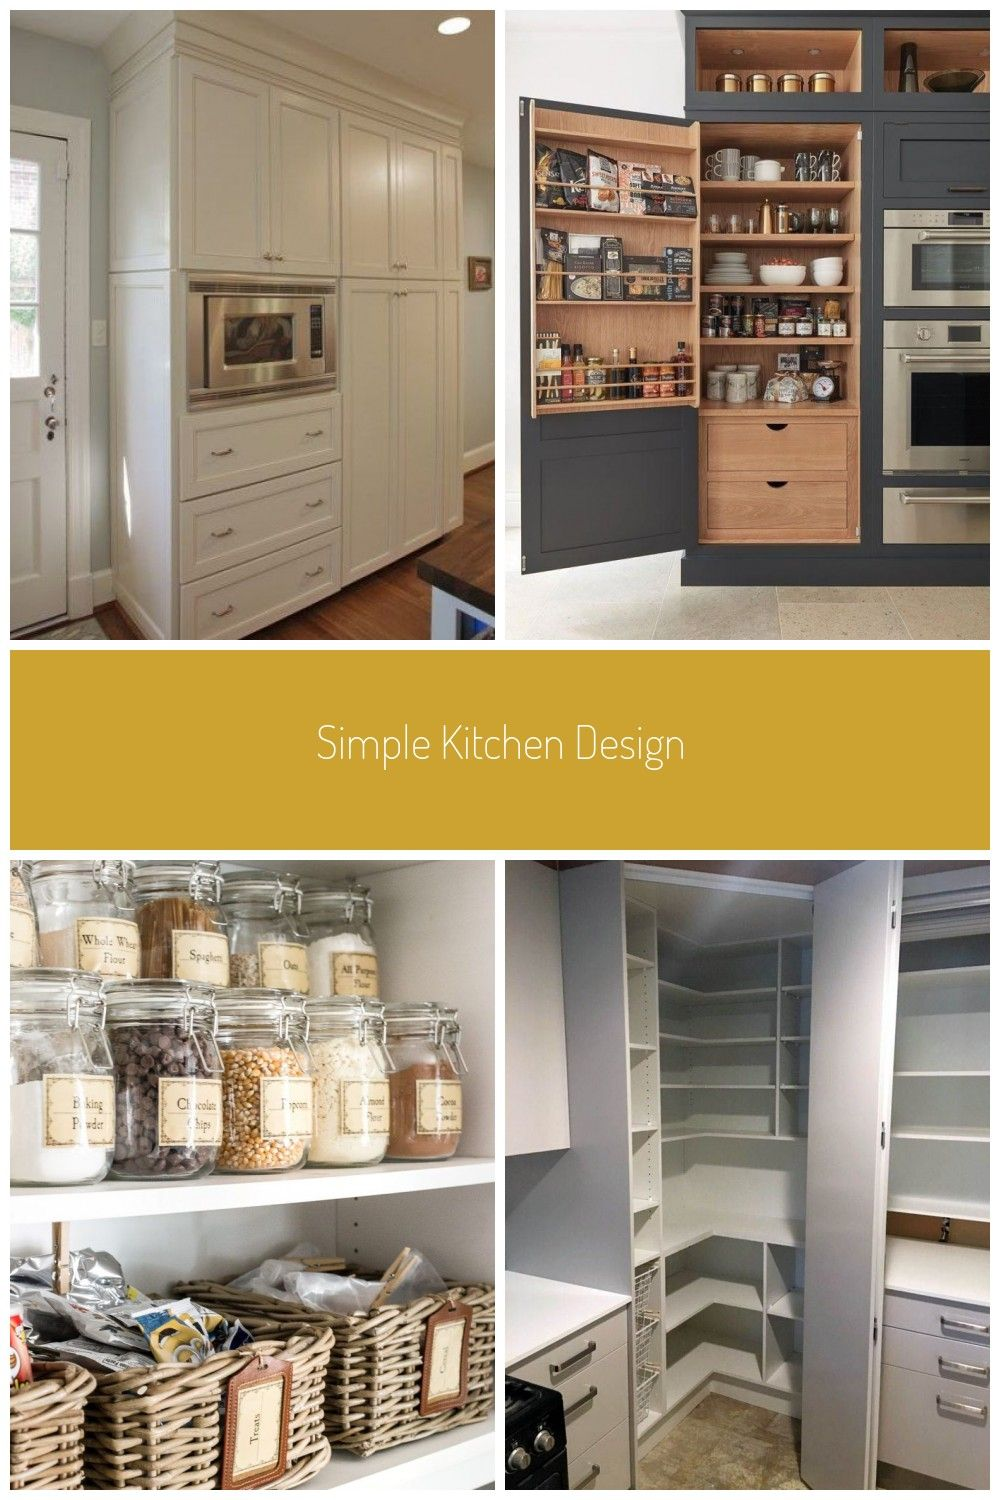 Kitchen Pantry With Microwave Storage 68 Ideas For 2019 In 2020 Speisekammer